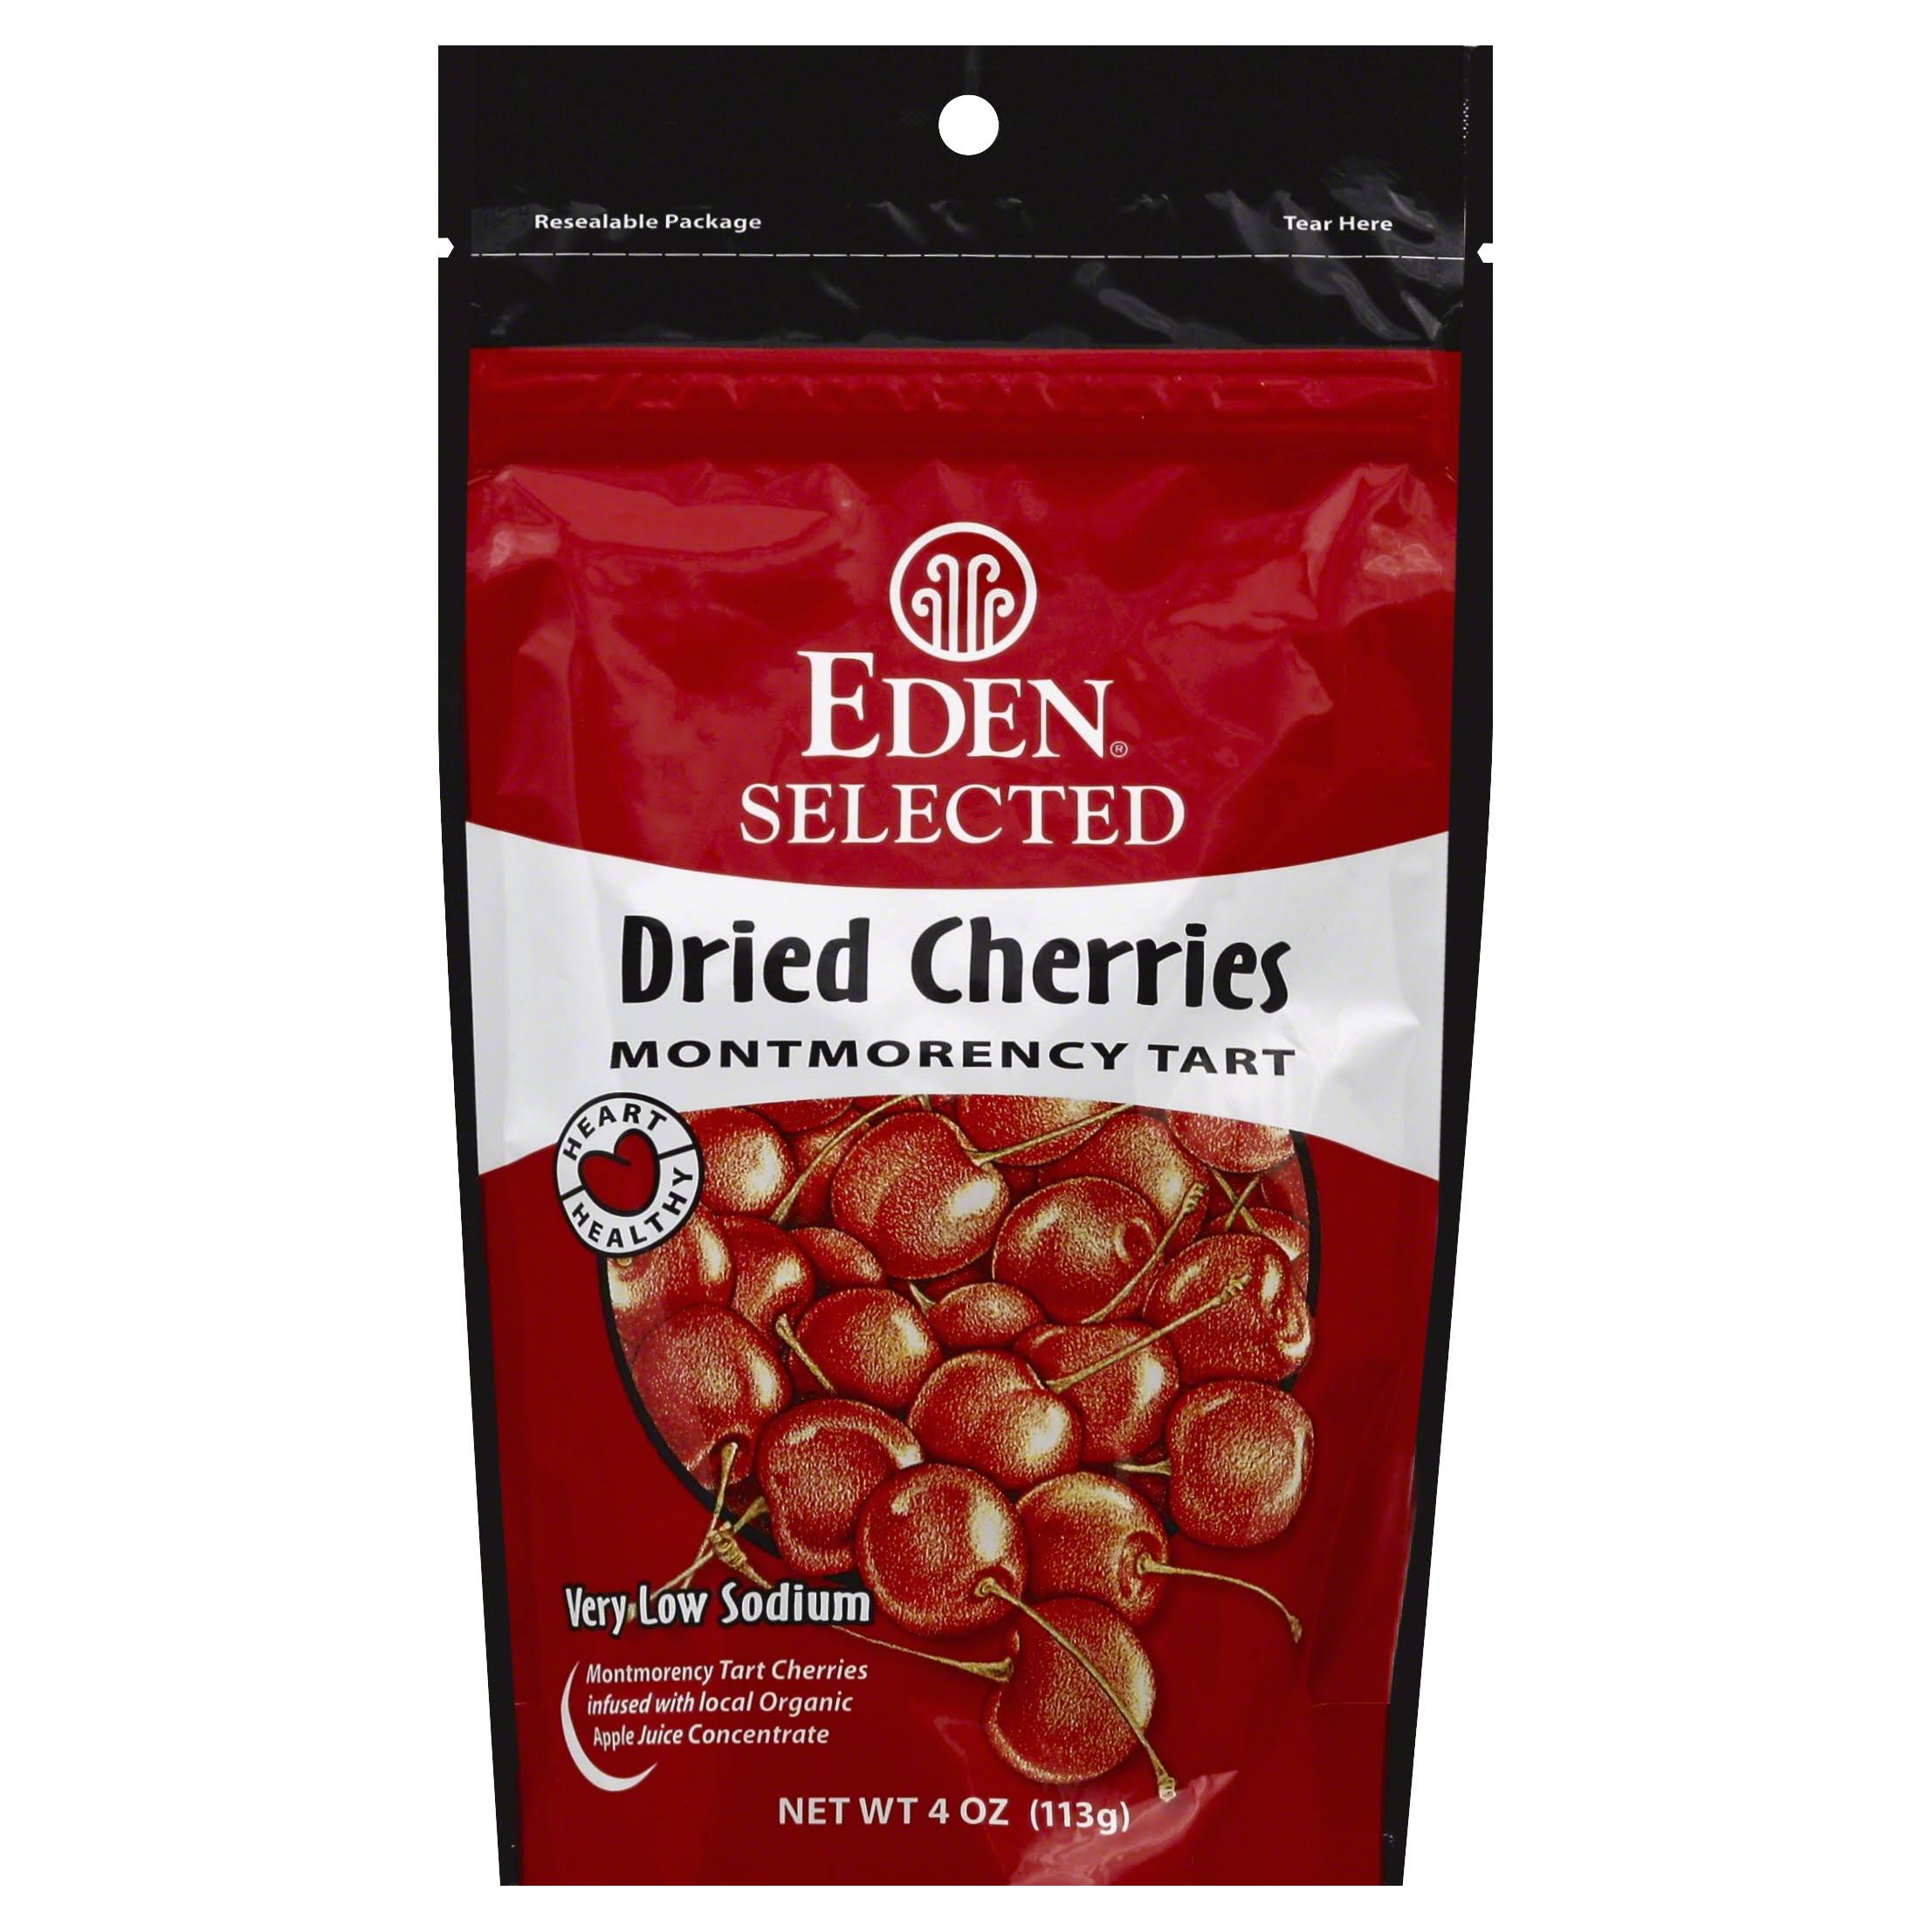 Eden Selected Dried Cherries - Montmorency Tart, 4oz